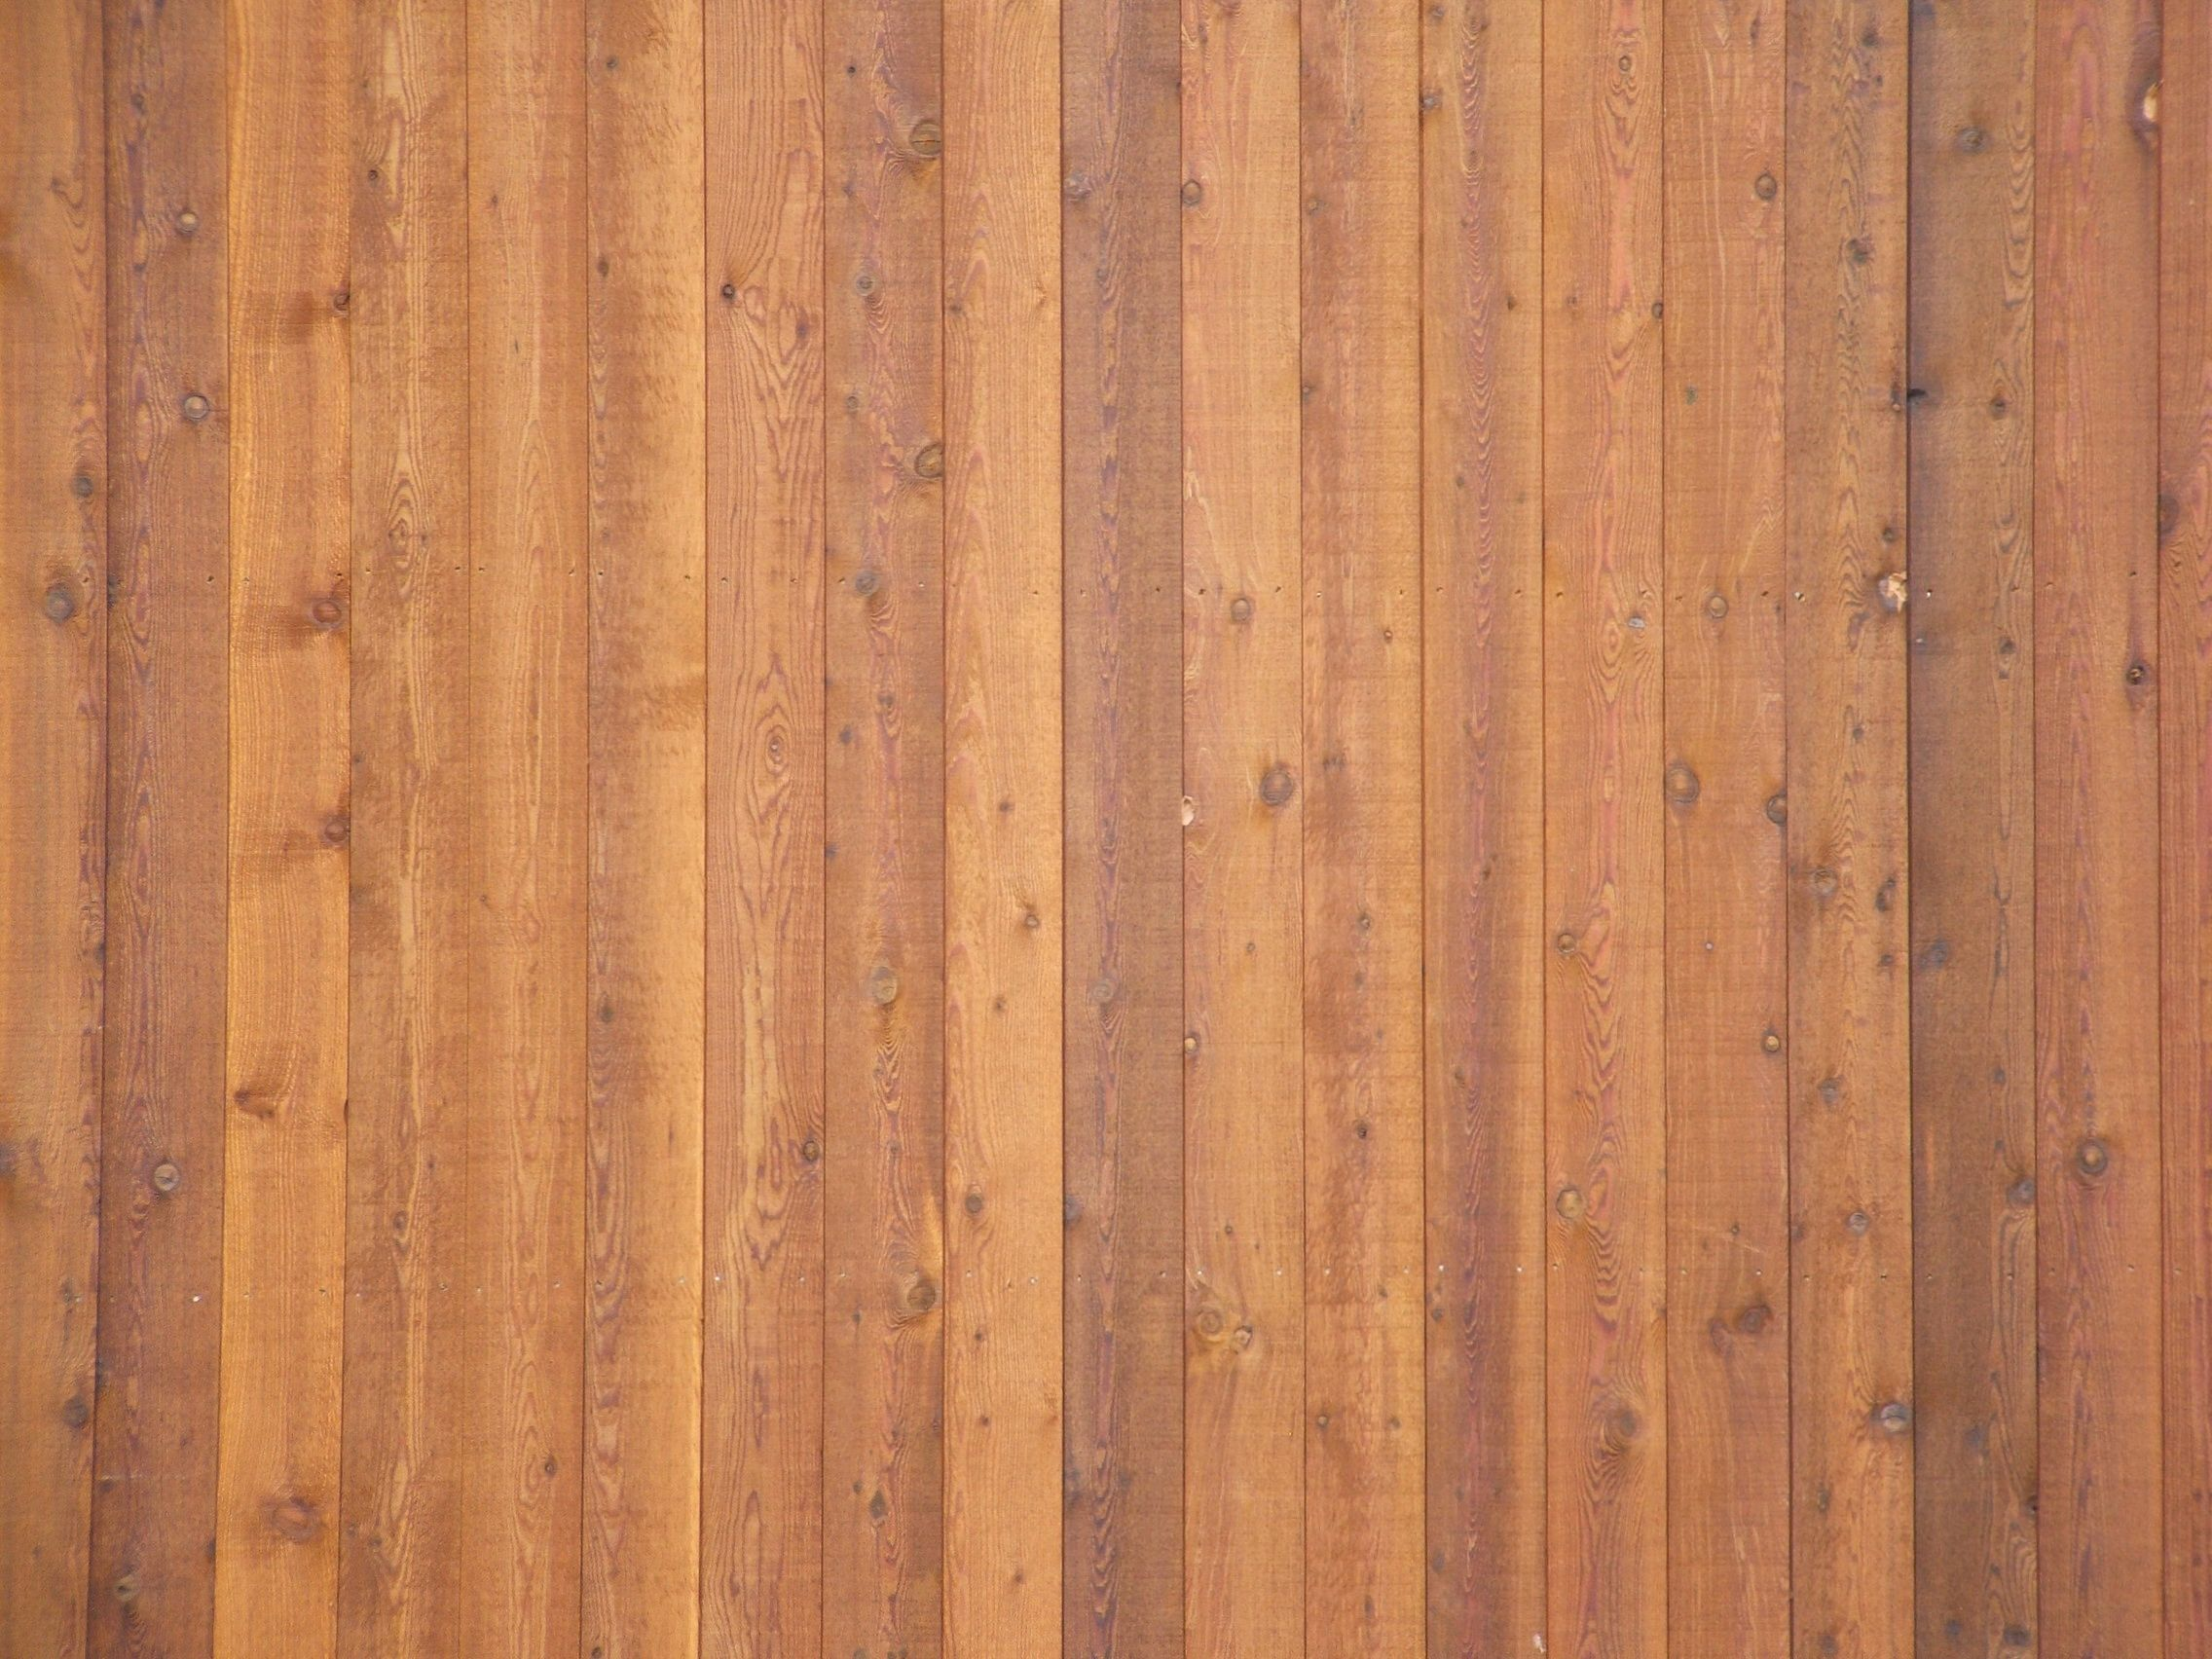 Charmant Wood Interior Wall Textures